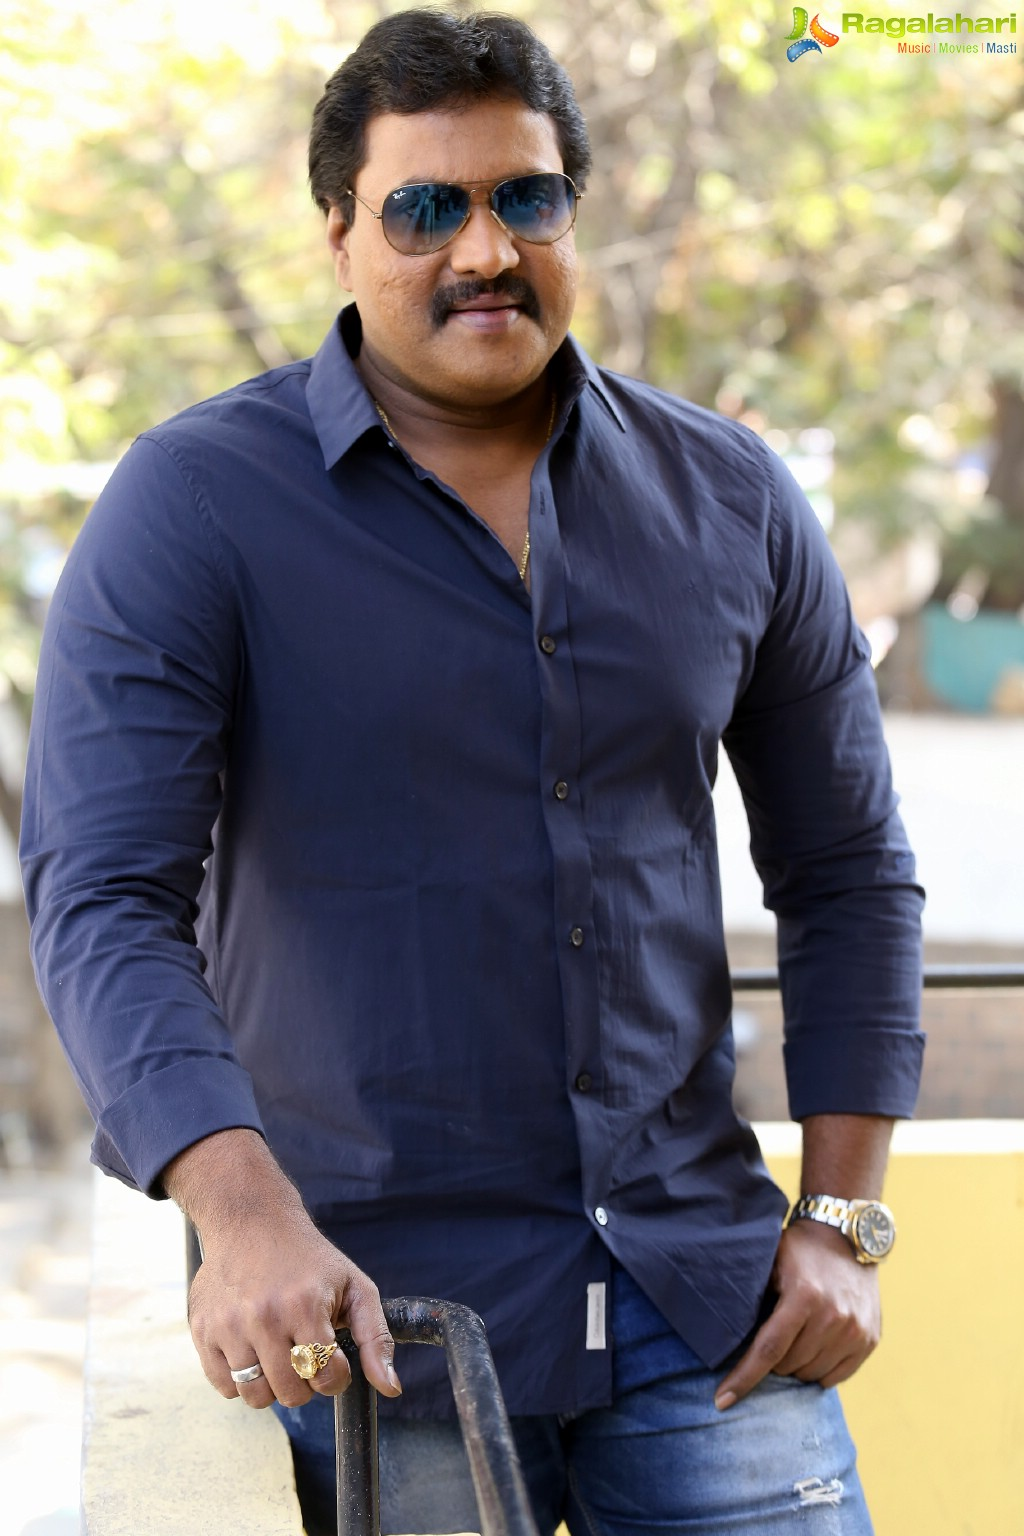 sunil at 2 countries movie interview image 31 latest actor